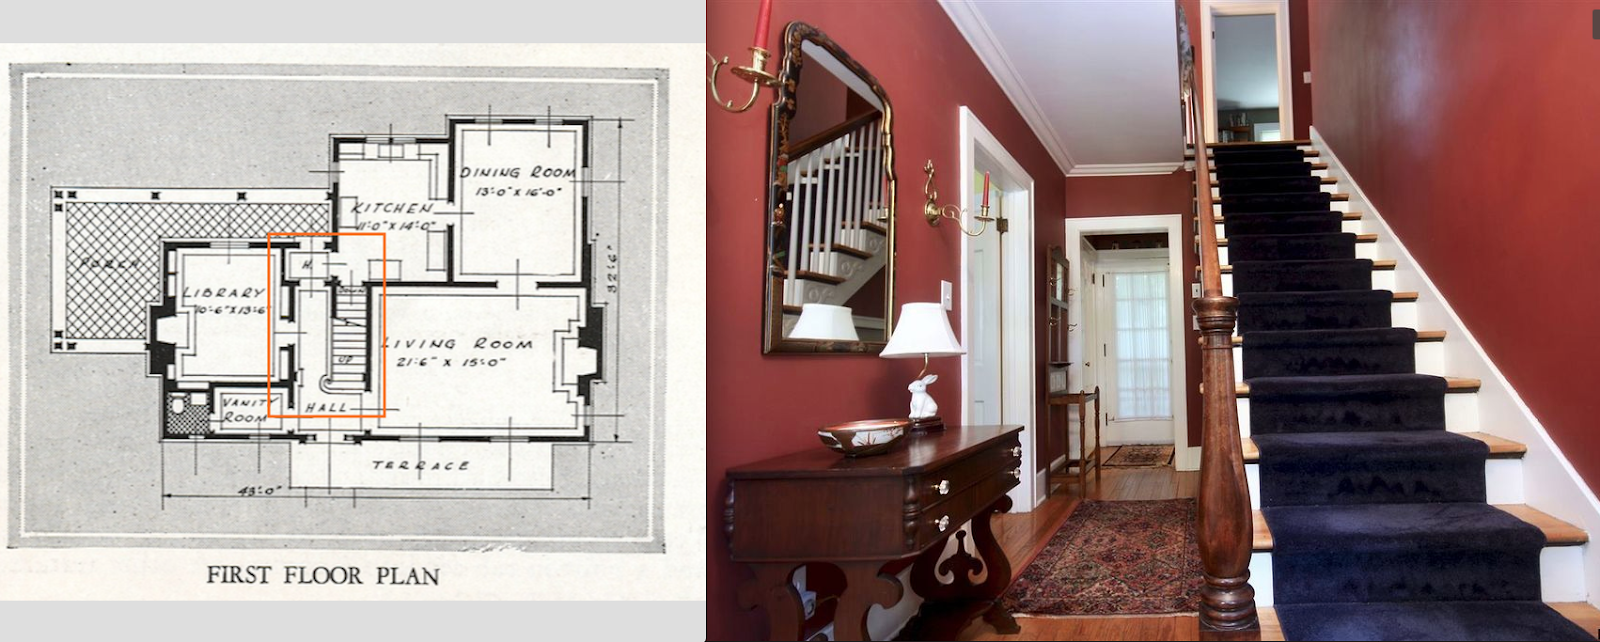 Sears house seeker entry hall and staircase sears new haven model 30 hawthorne ave delmar ny malvernweather Images